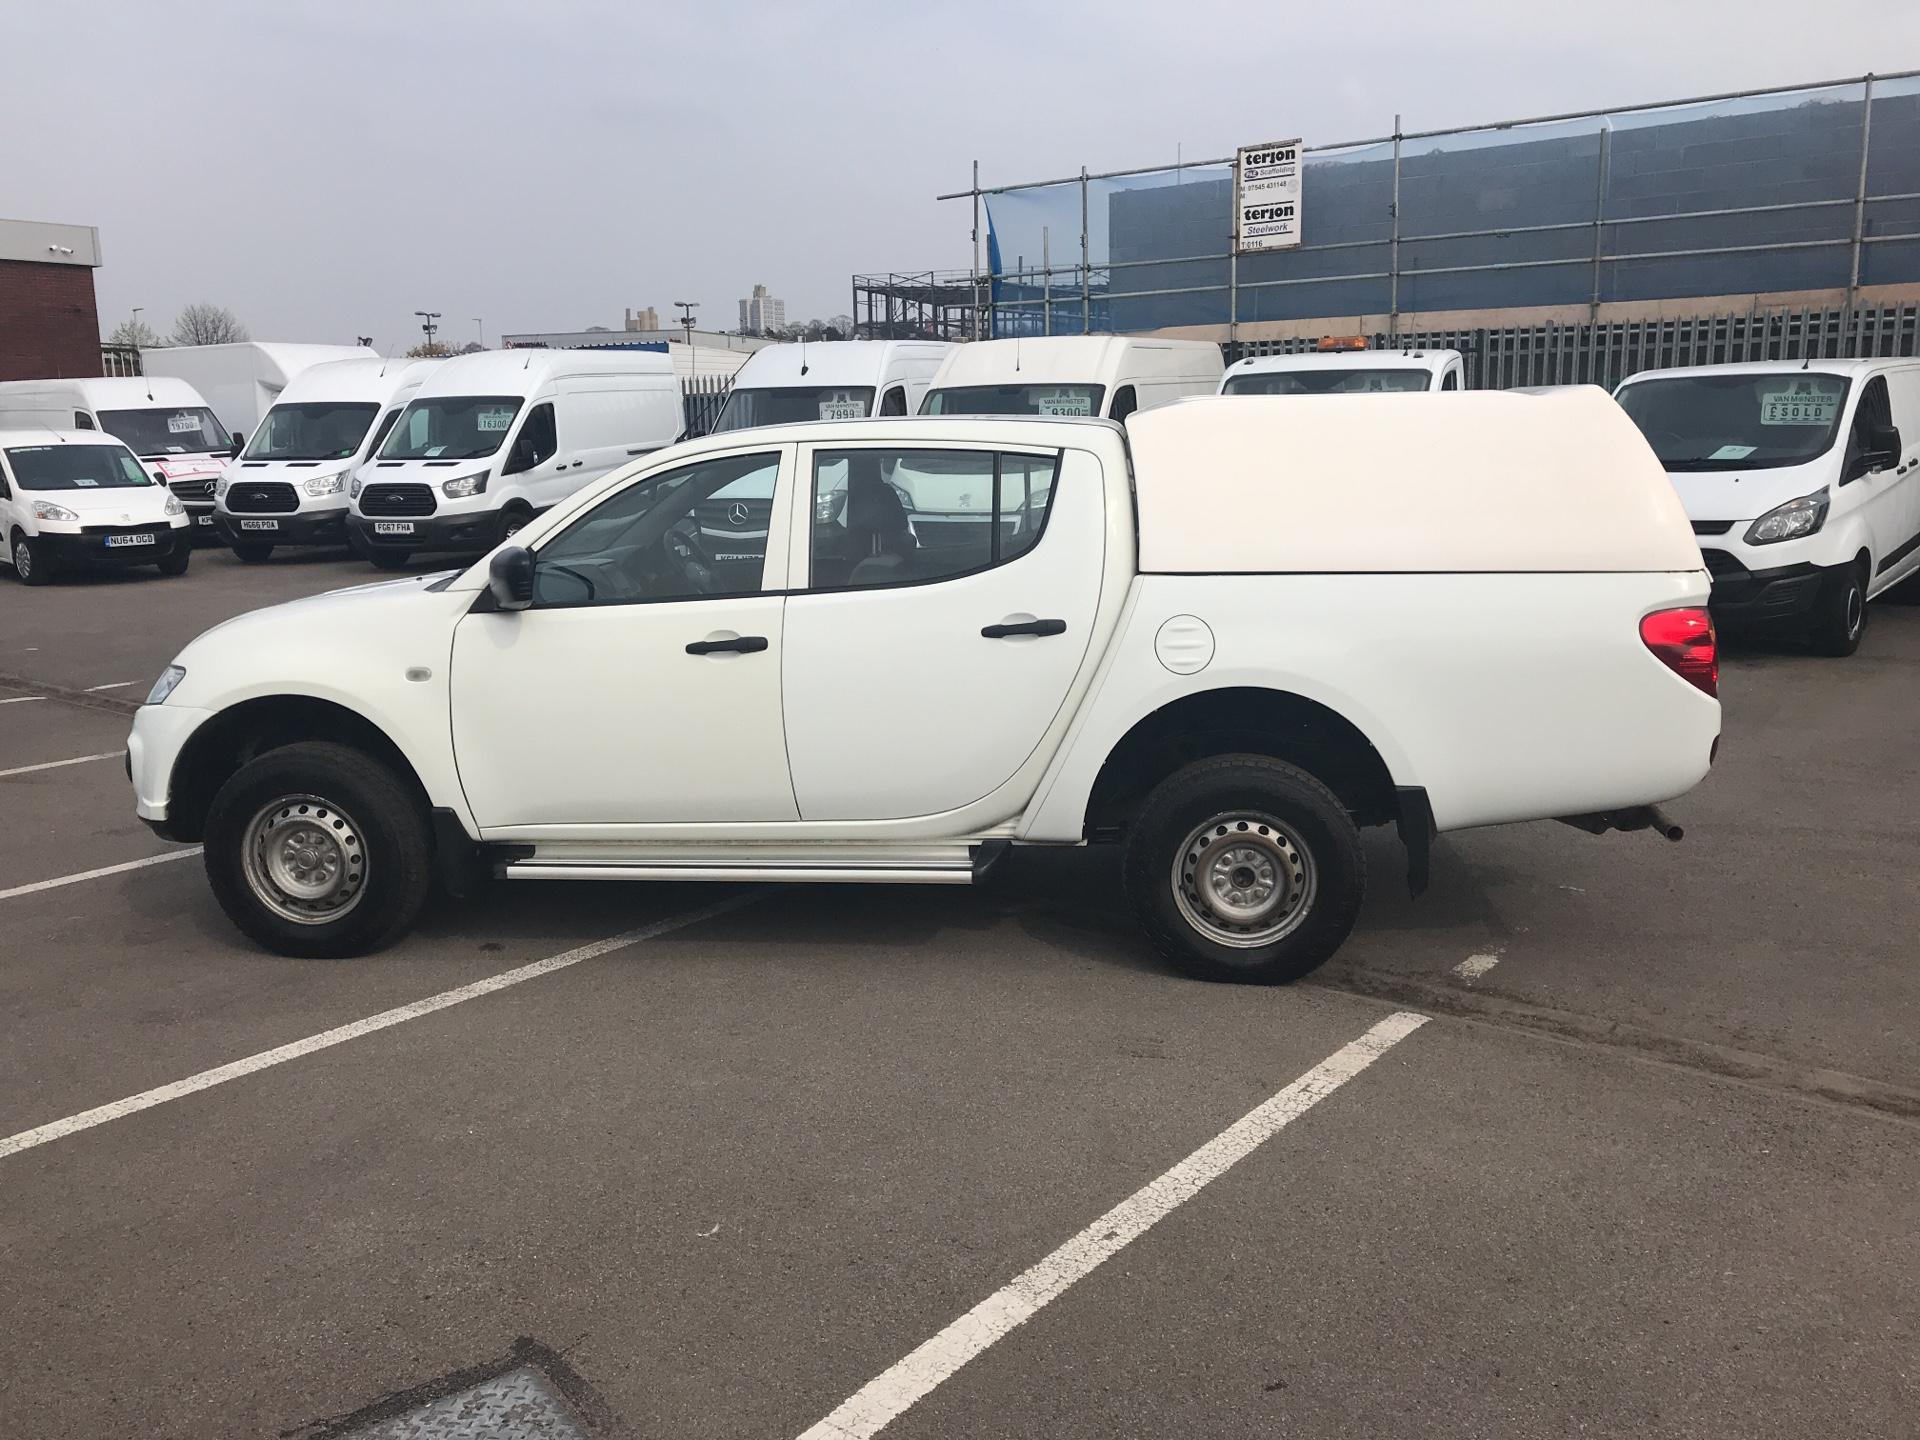 2015 Mitsubishi L200 Double Cab Di-D 4Life 4Wd 134Bhp *VALUE RANGE VEHICLE CONDITION REFLECTED IN PRICE* (DY65XLH) Image 6